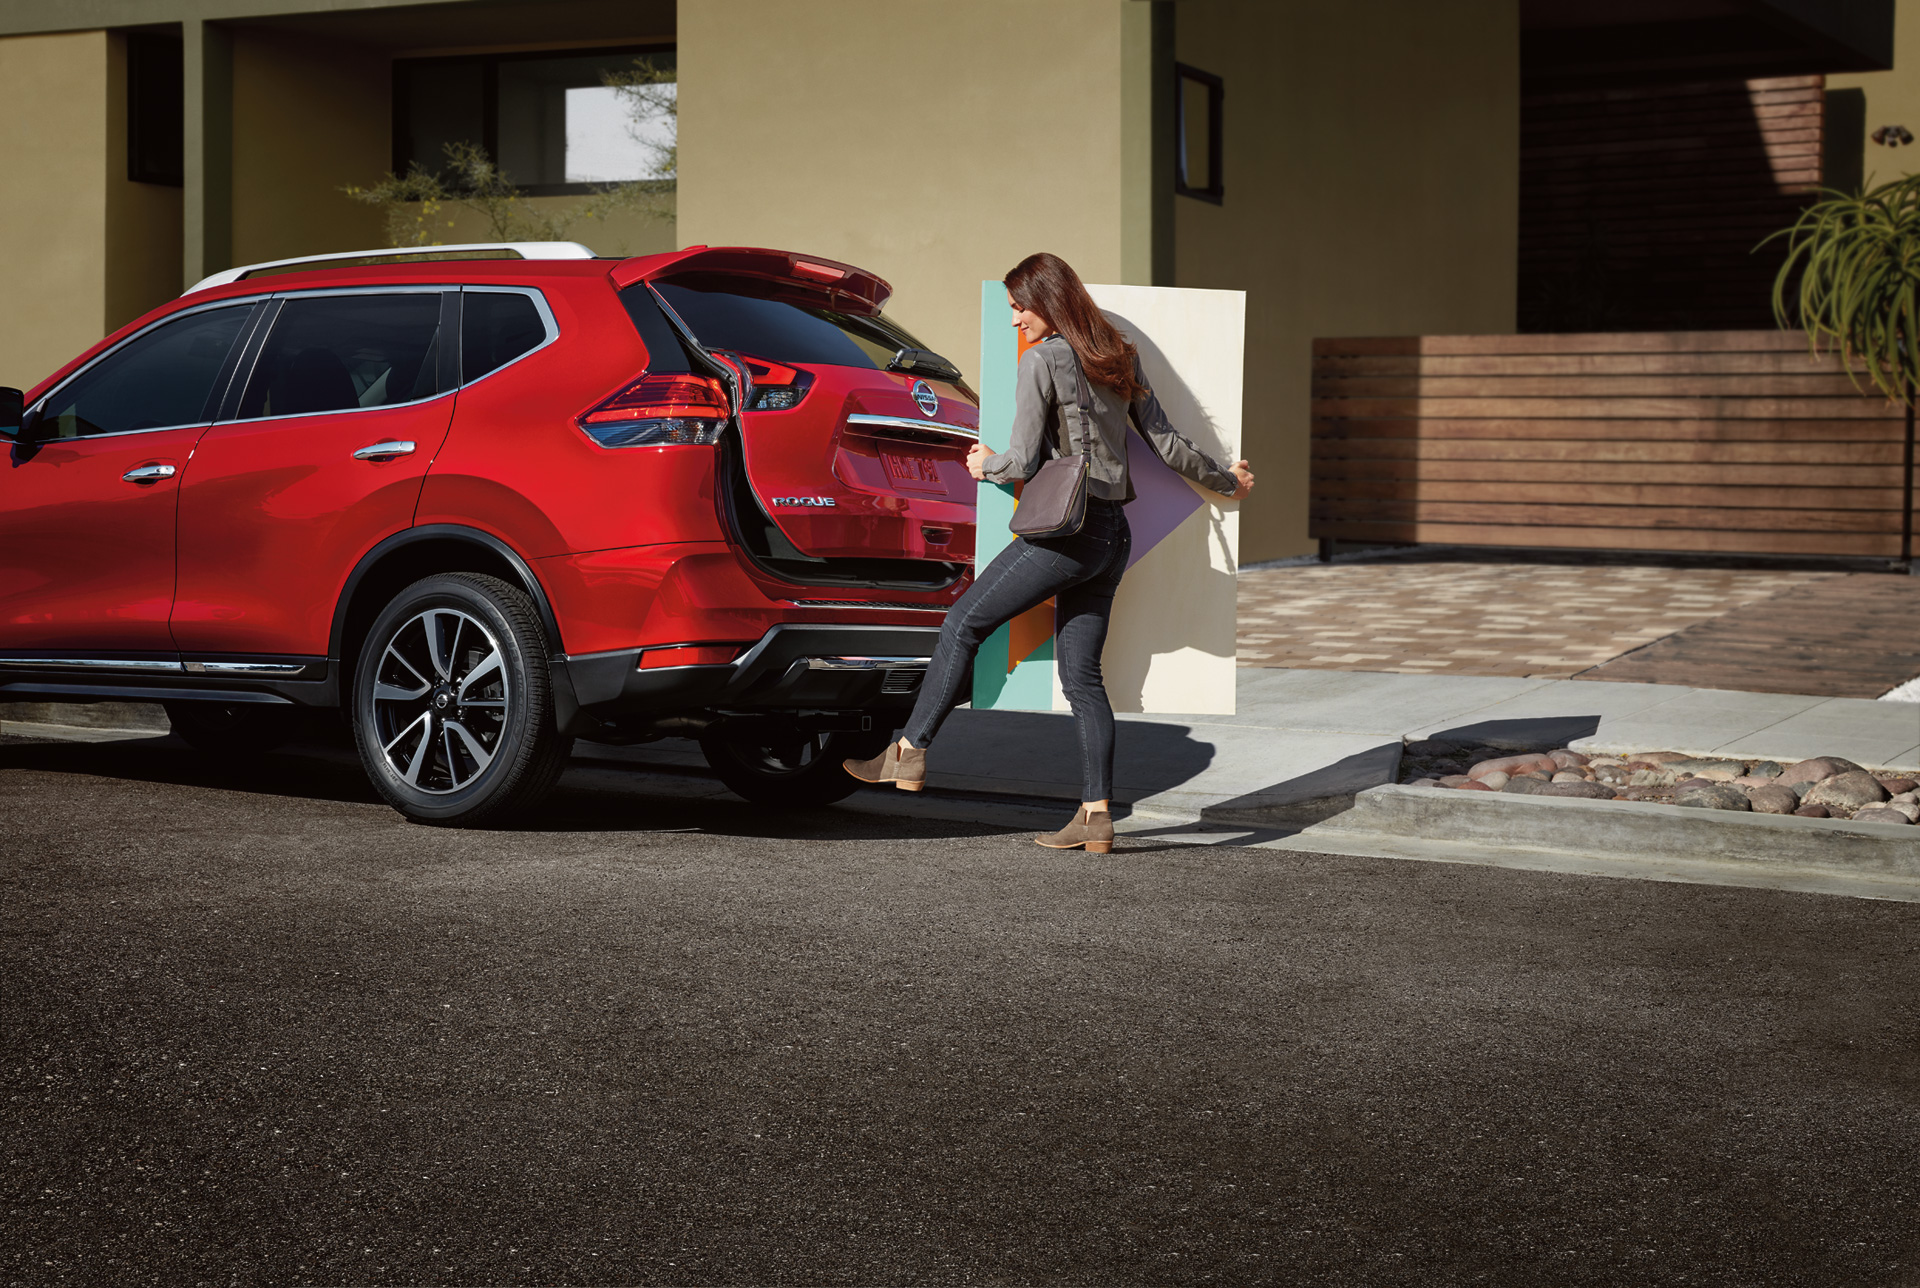 Nissan Rogue Motion Activated Liftgate